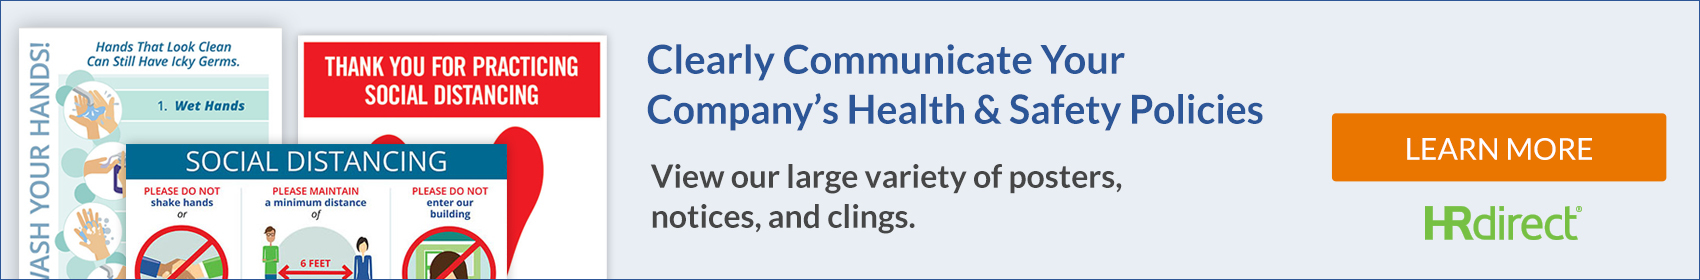 HRdirect - Clearly Communicate Your Company's Health & Safety Policies. View Our large variety of posters, notices, and clings. - Learn More